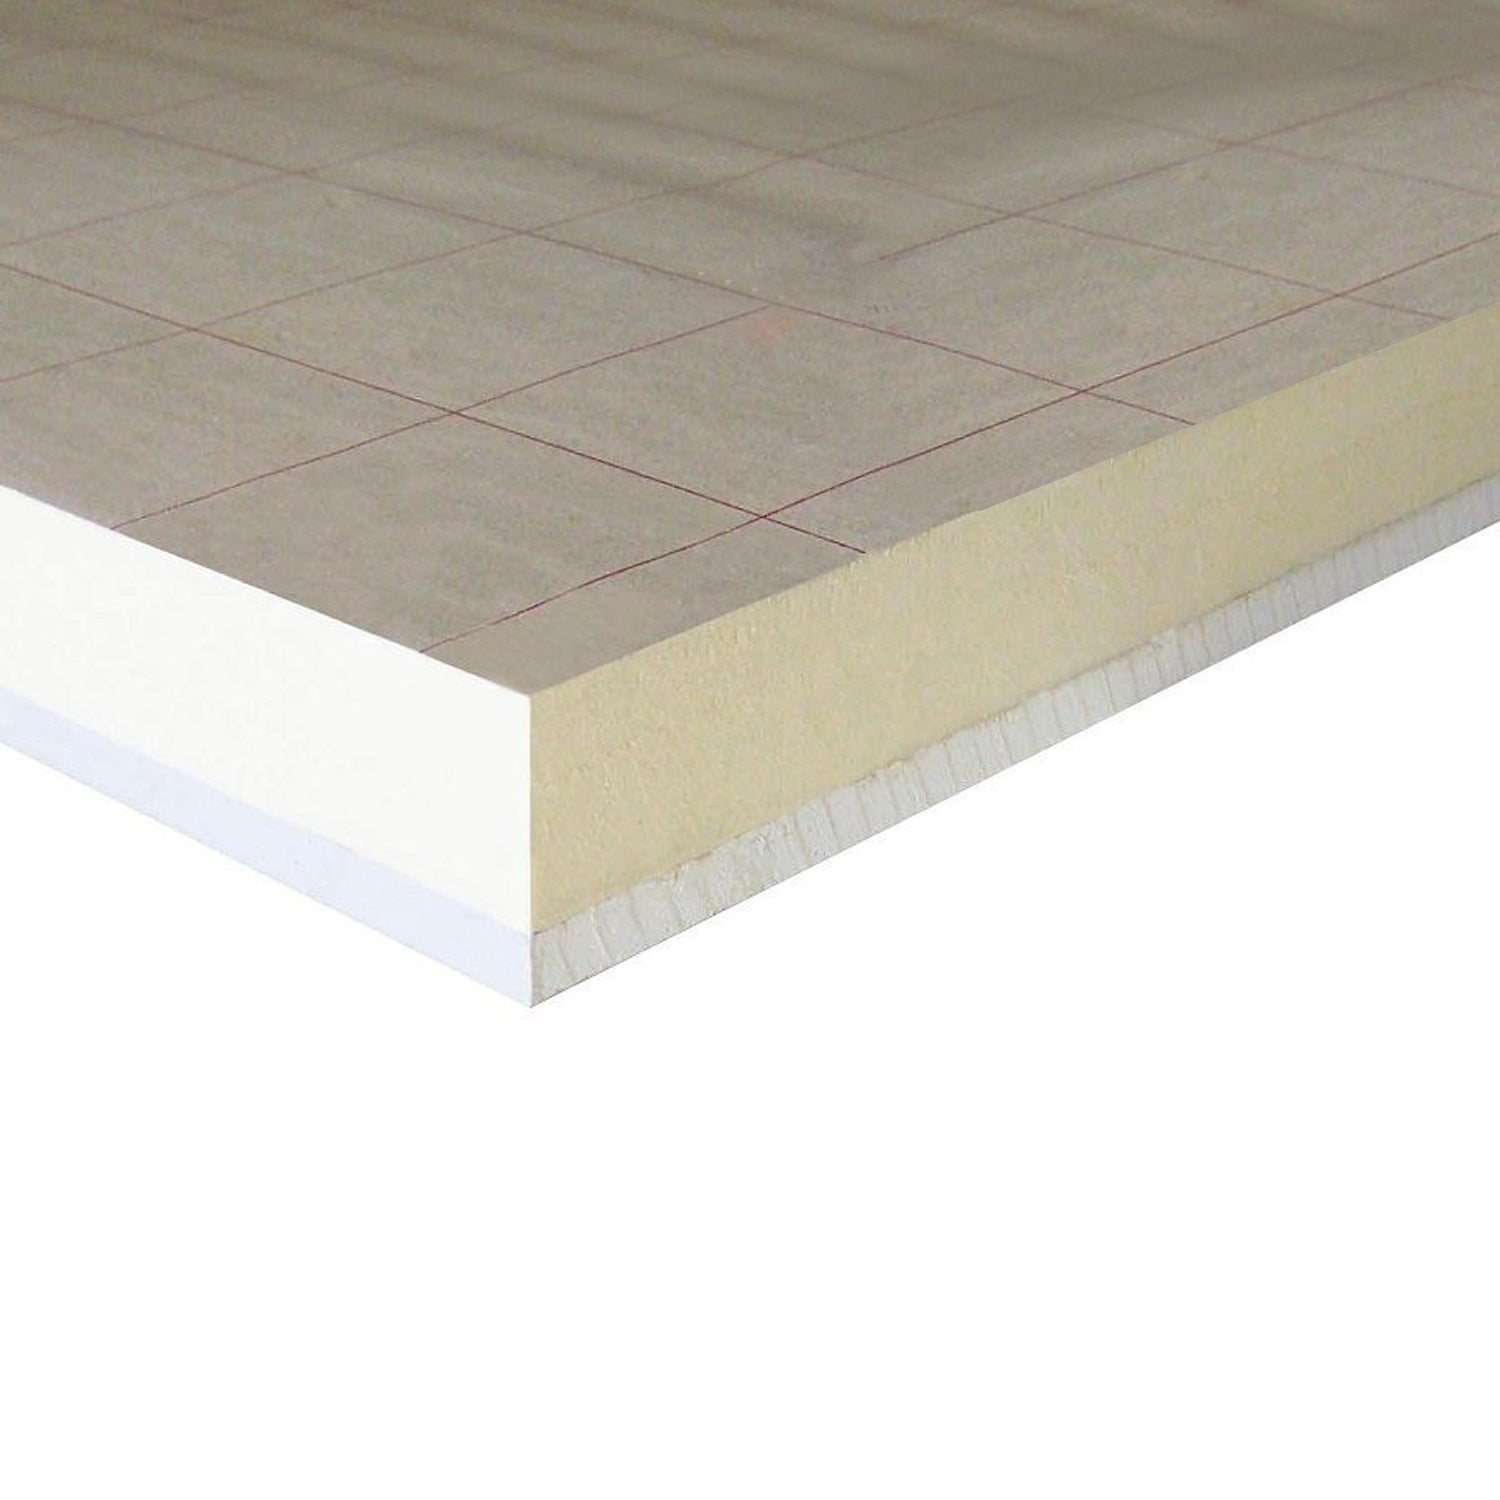 Thermal Laminate Plasterboard 37.5mm